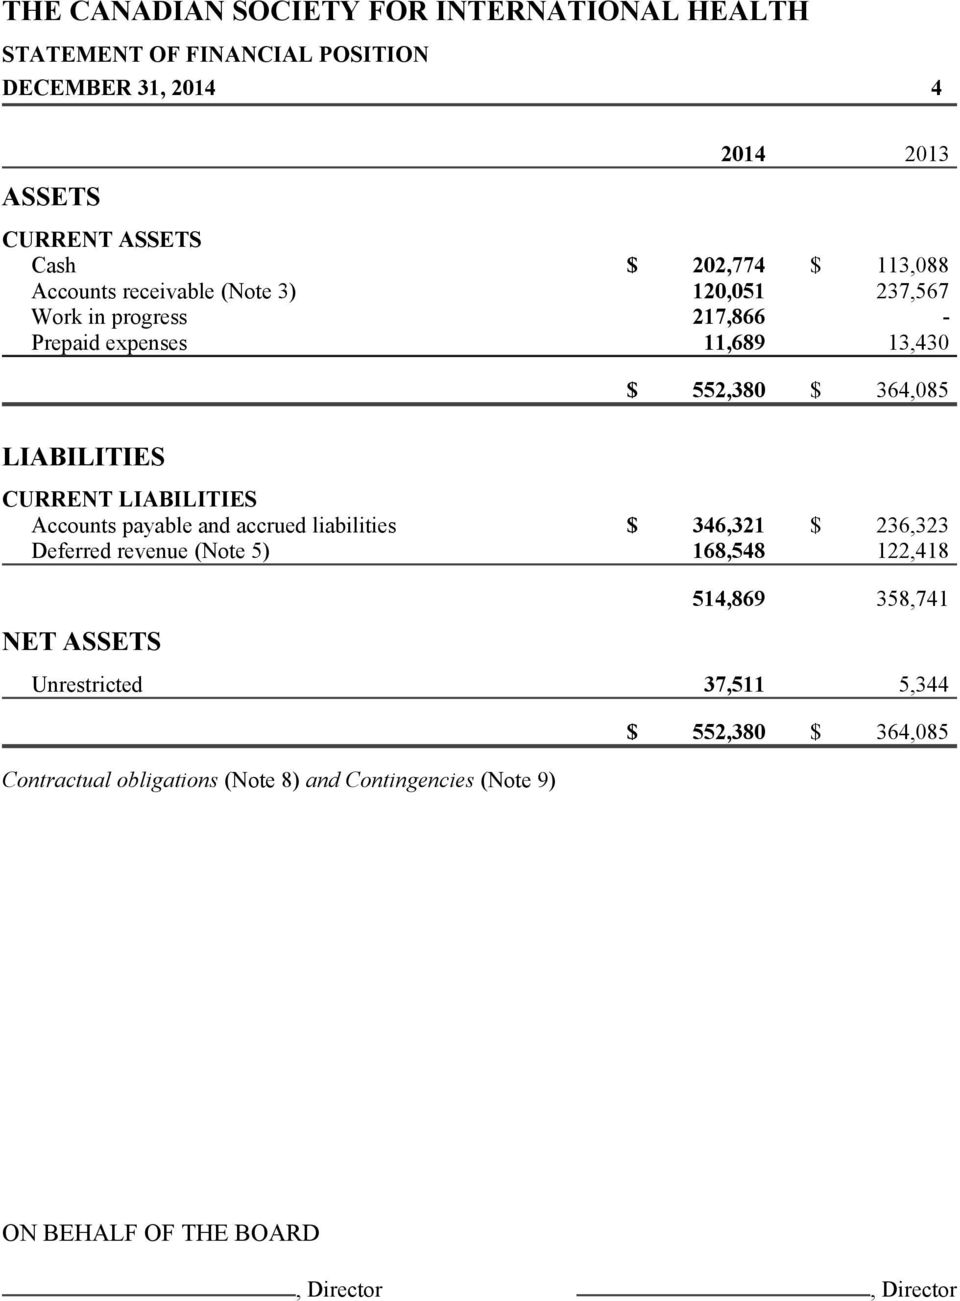 Accounts payable and accrued liabilities $ 346,321 $ 236,323 Deferred revenue (Note 5) 168,548 122,418 NET ASSETS 514,869 358,741